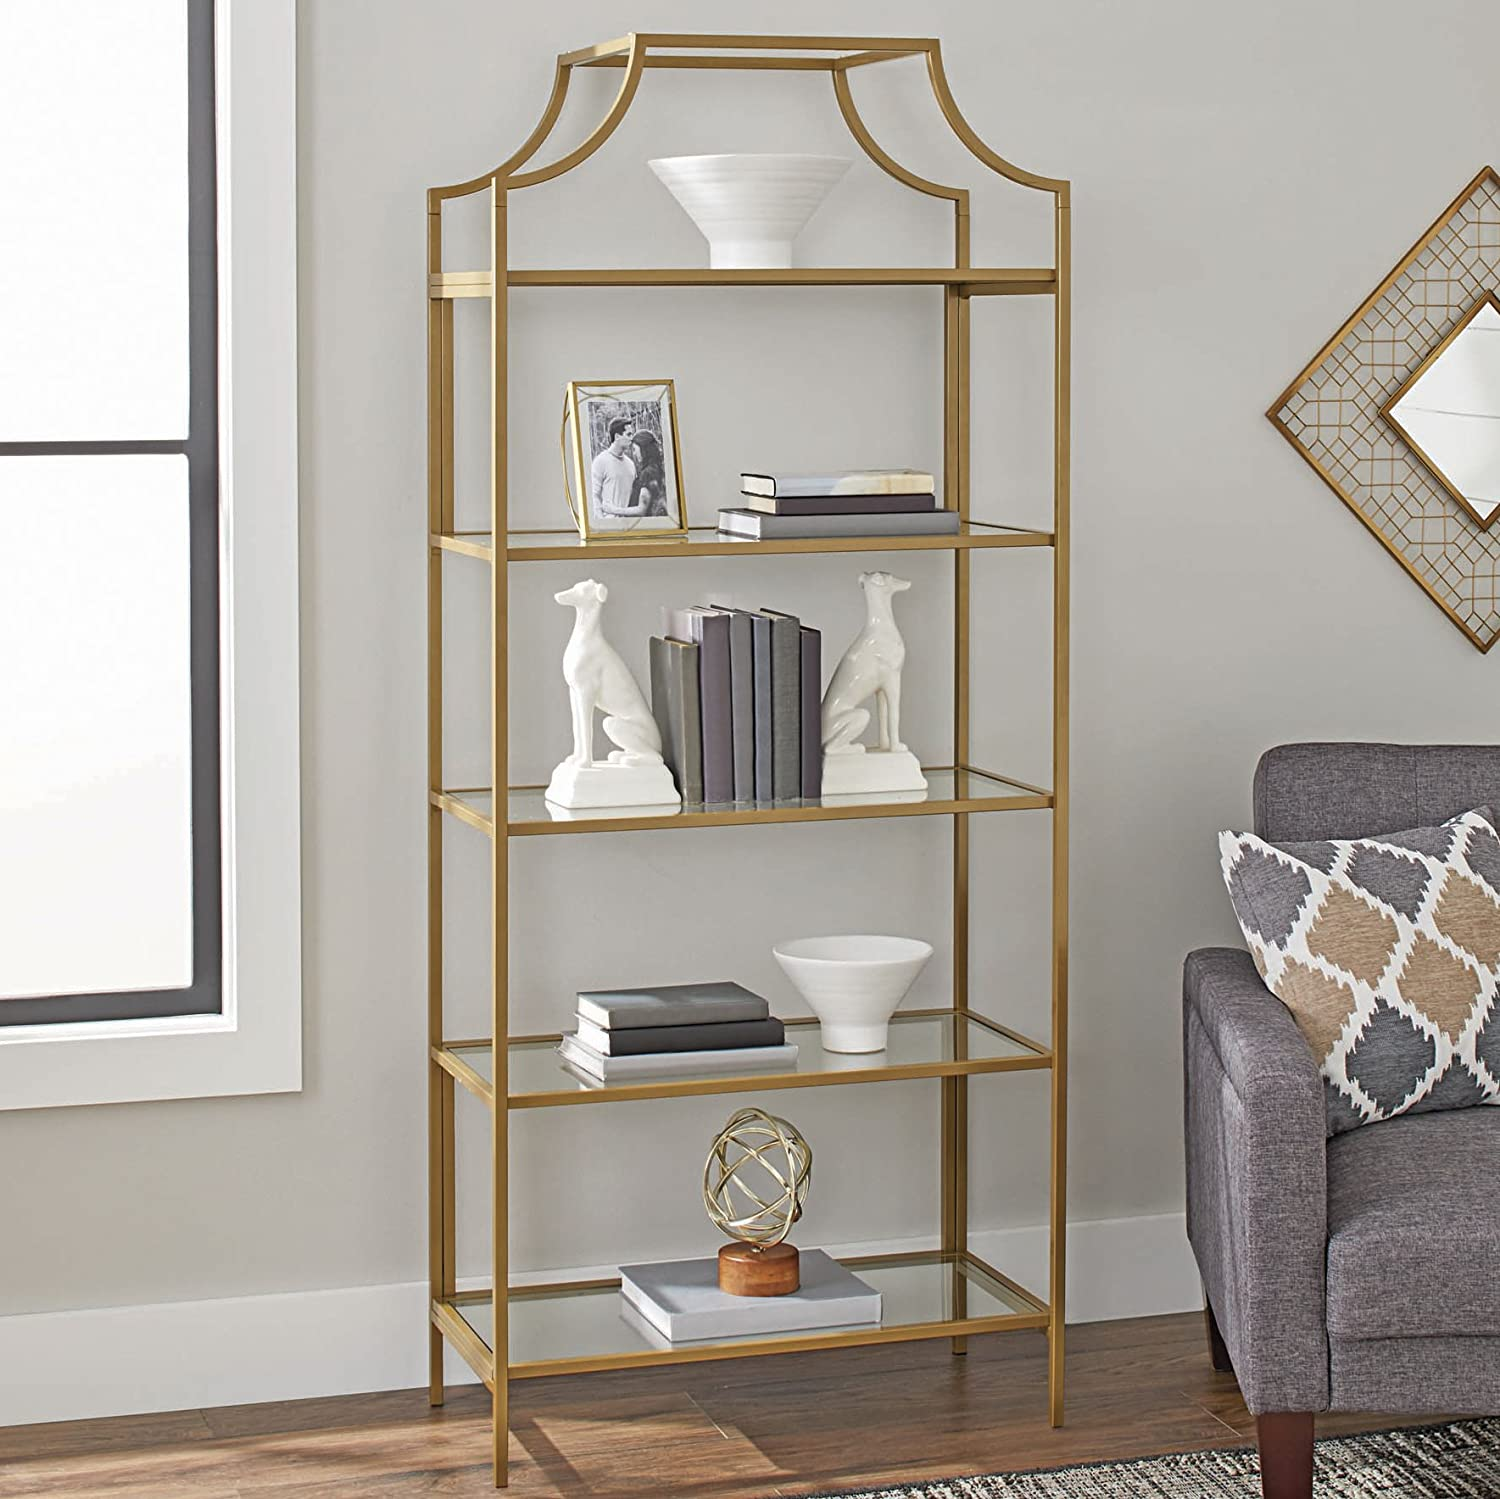 Better Homes Gardens 71 Nola 5 Tier Etagere Bookcase Gold Finish Better Homes Gardens 71 Nola 5 Tier Etagere Bookcase Gold Finish Amazon Co Uk Office Products